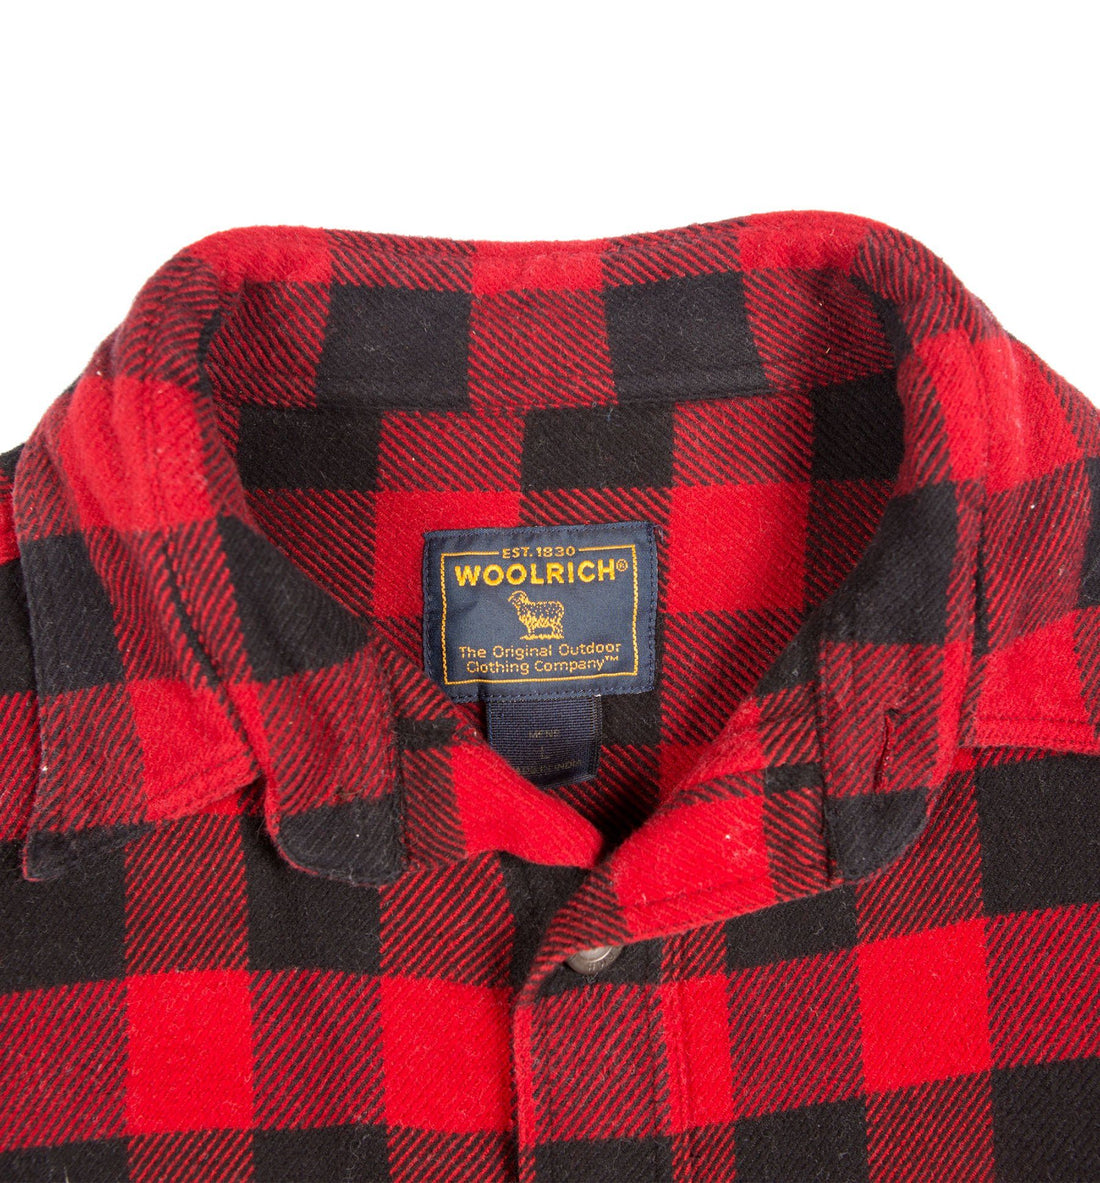 70's Woolrich Plaid Flannel - Vintage - Iron and Resin